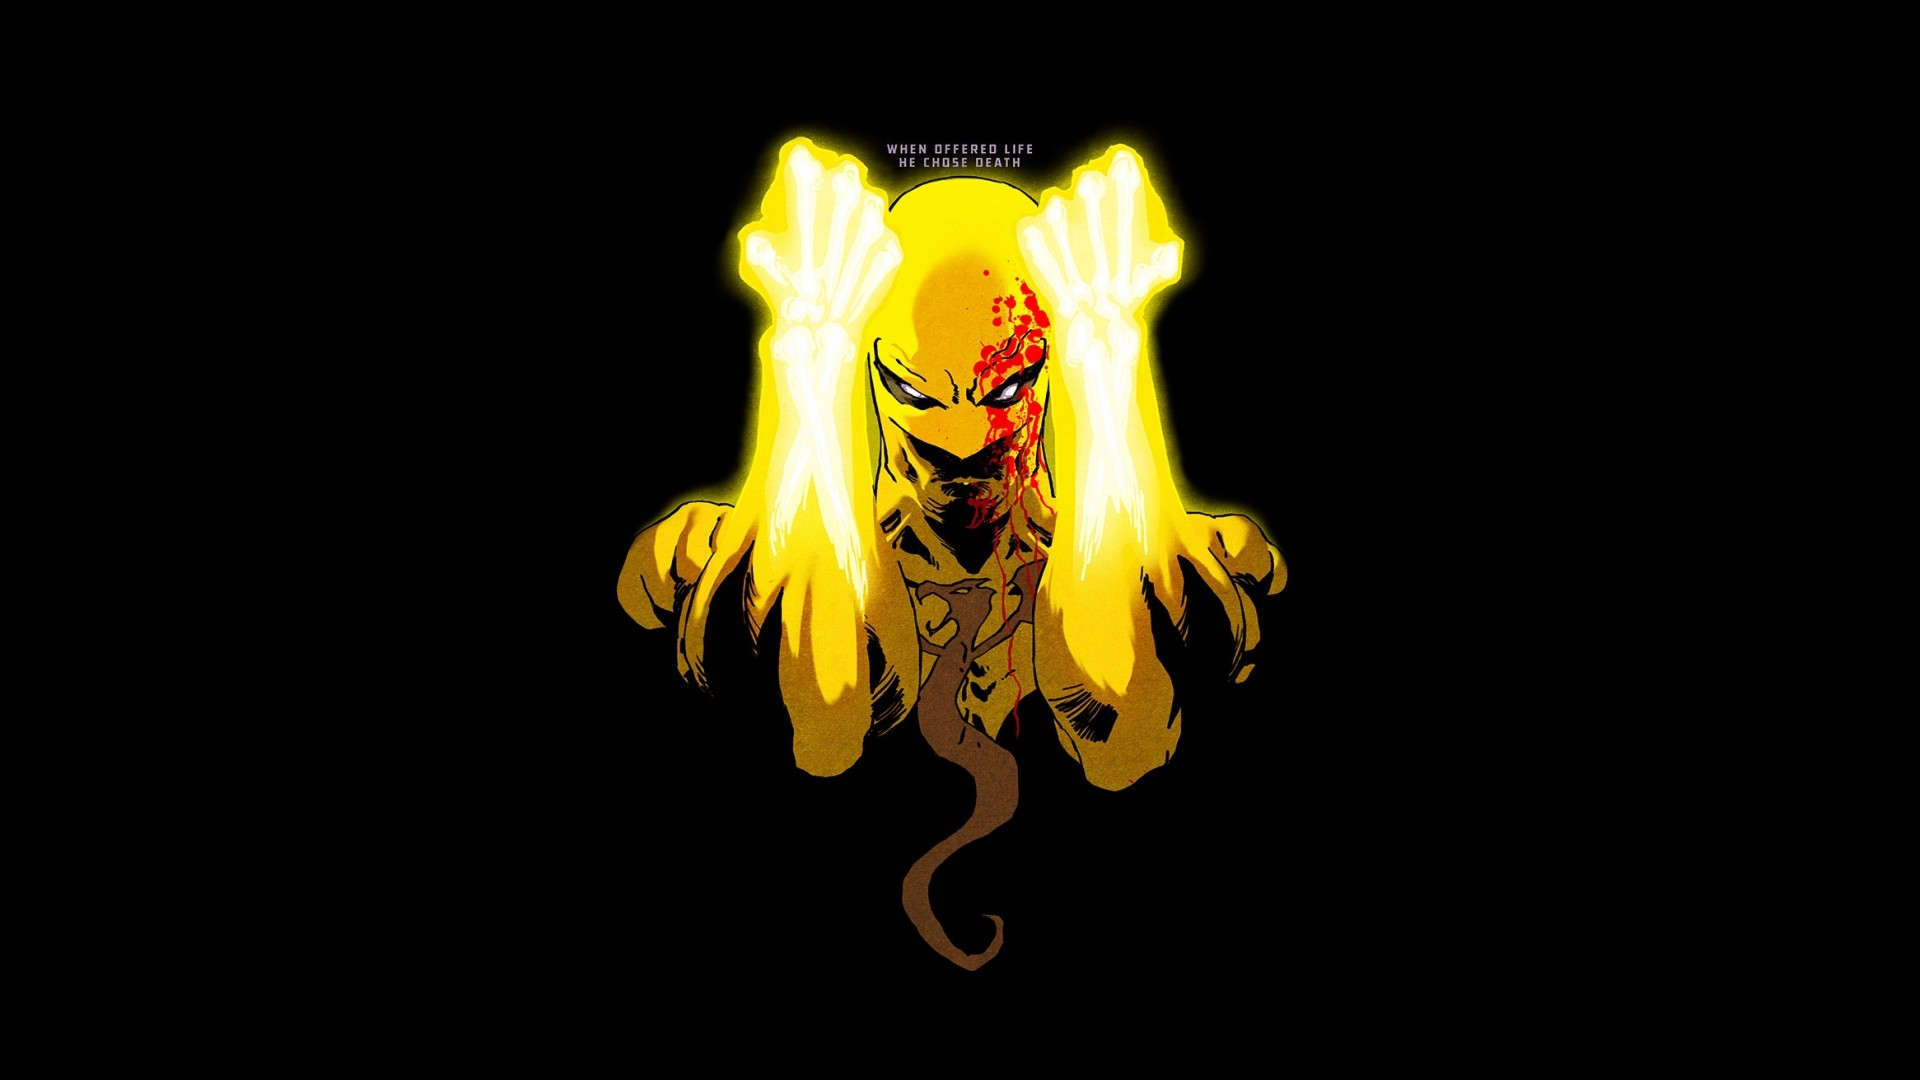 1920x1080 3 Iron Fist: The Living Weapon HD Wallpapers | Backgrounds - Wallpaper Abyss